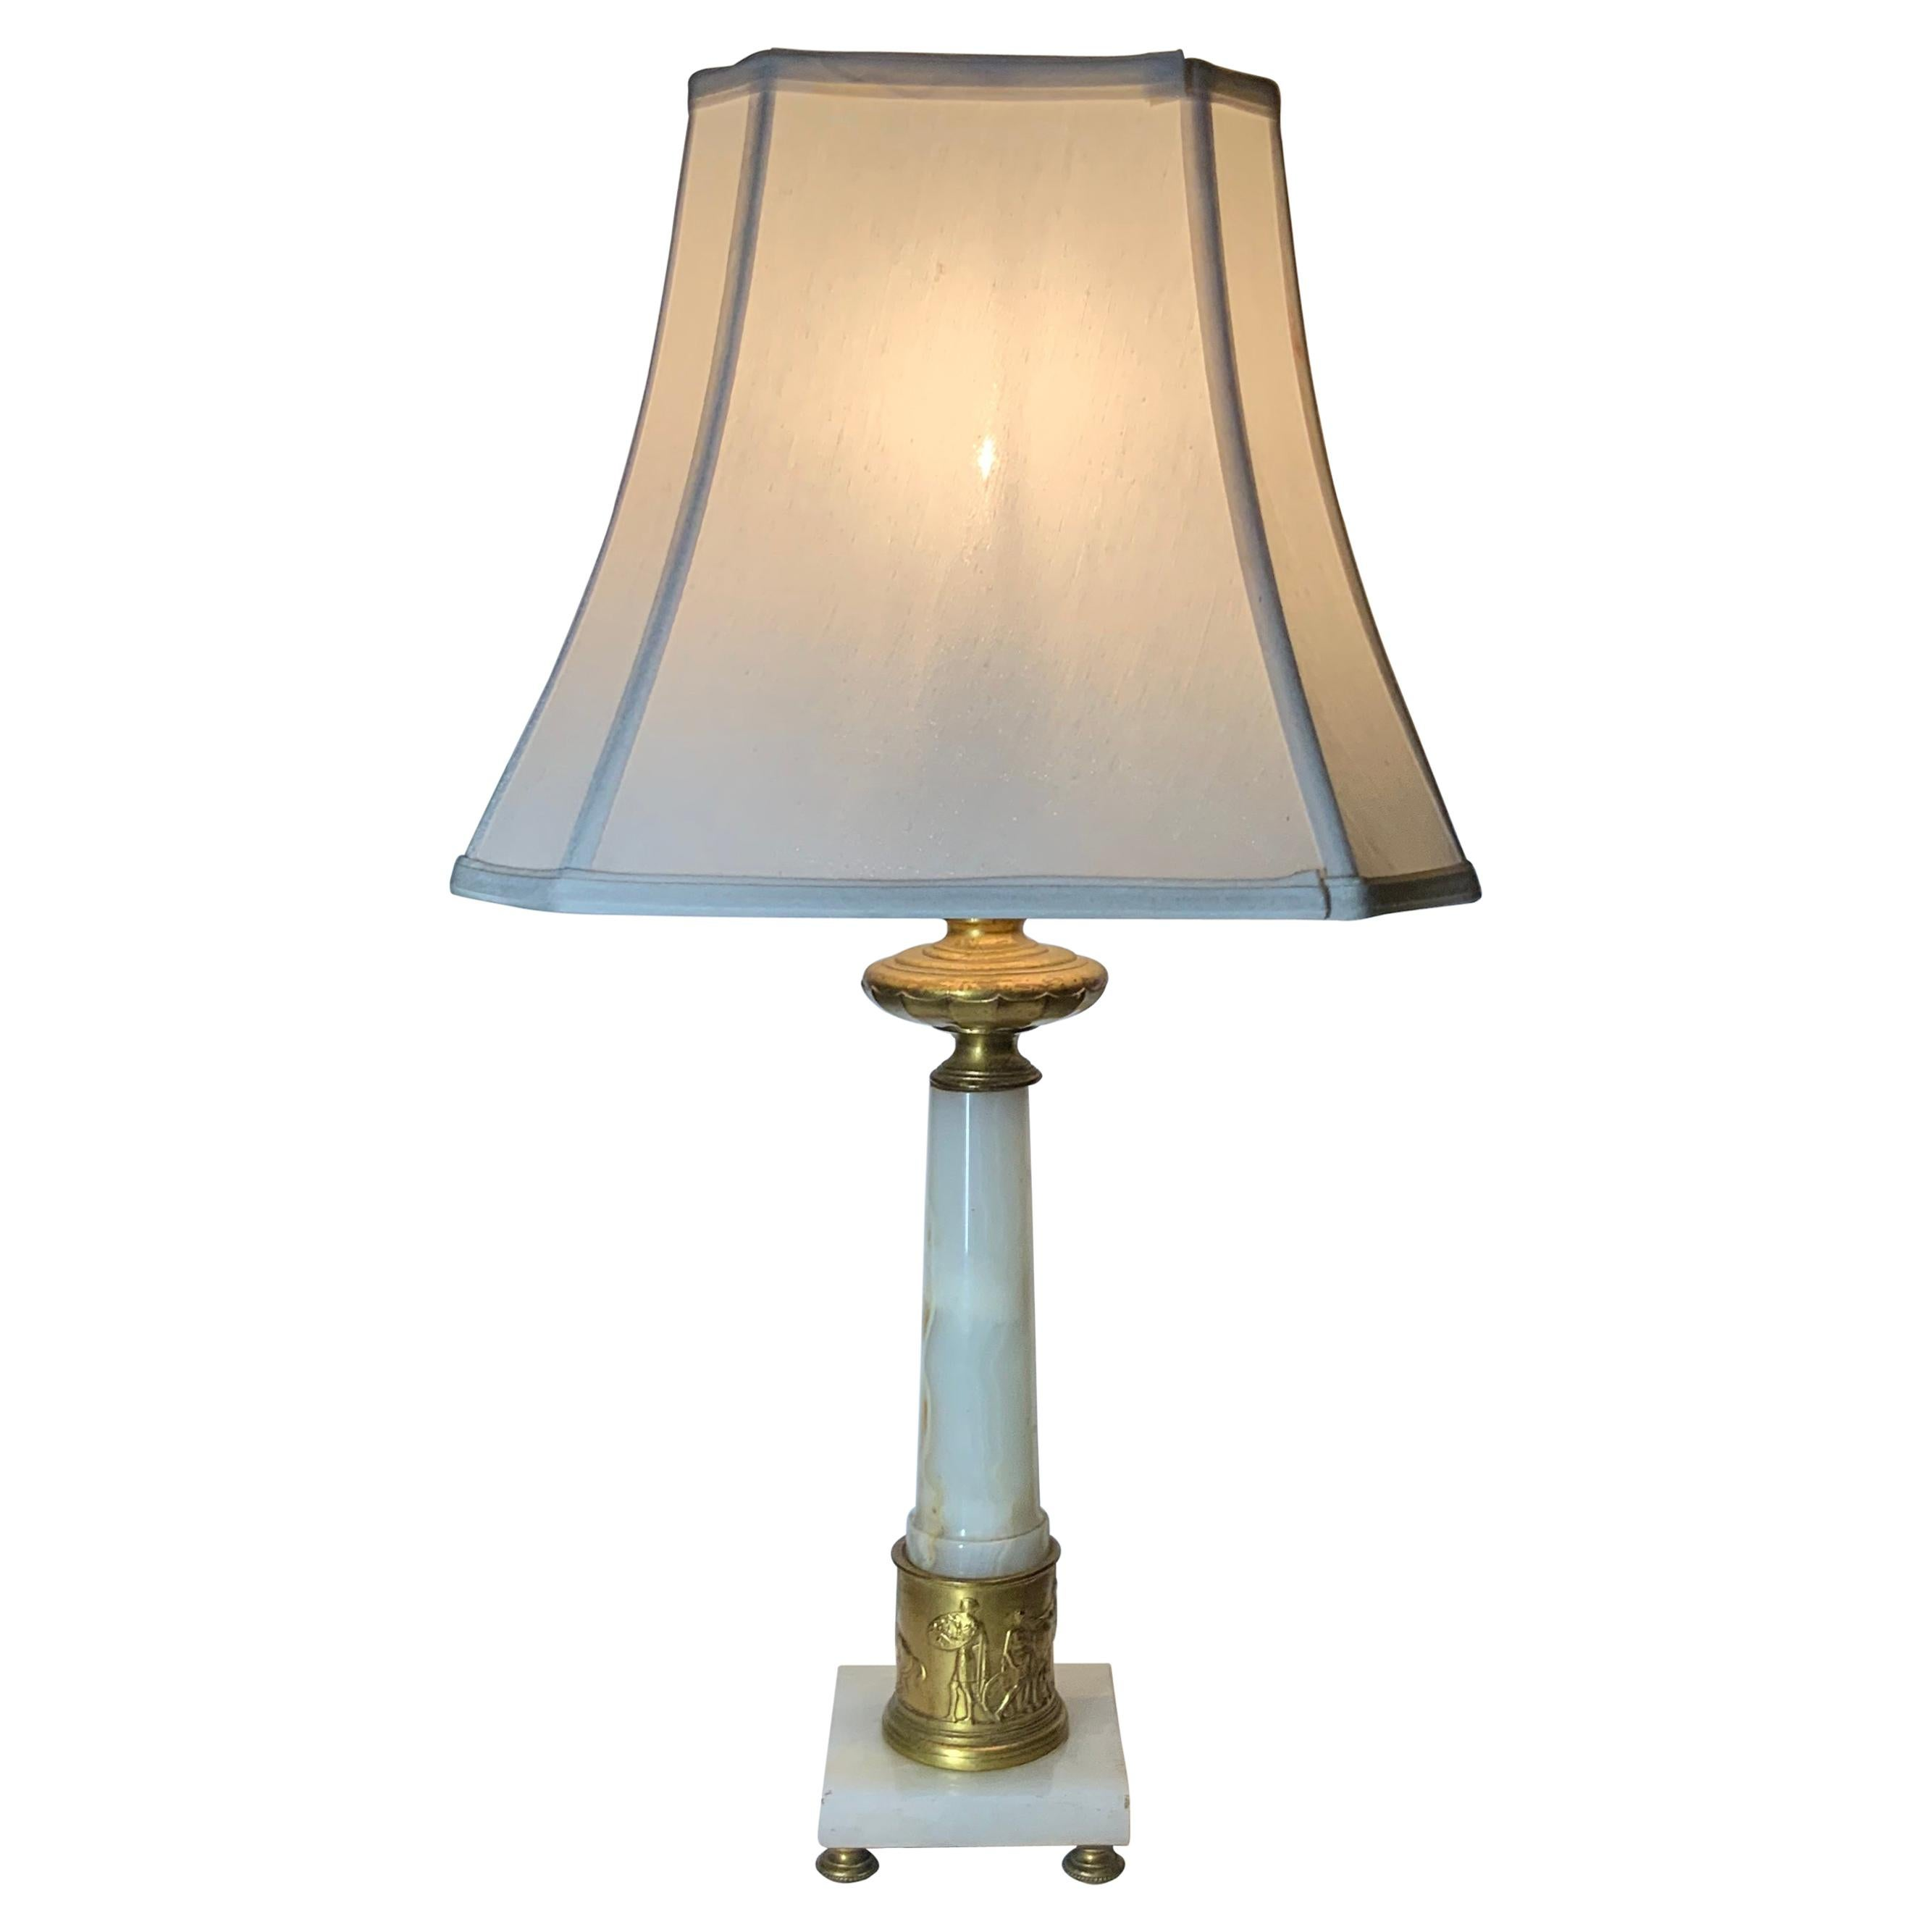 Alabaster and Bronze Neoclassical Table Lamp